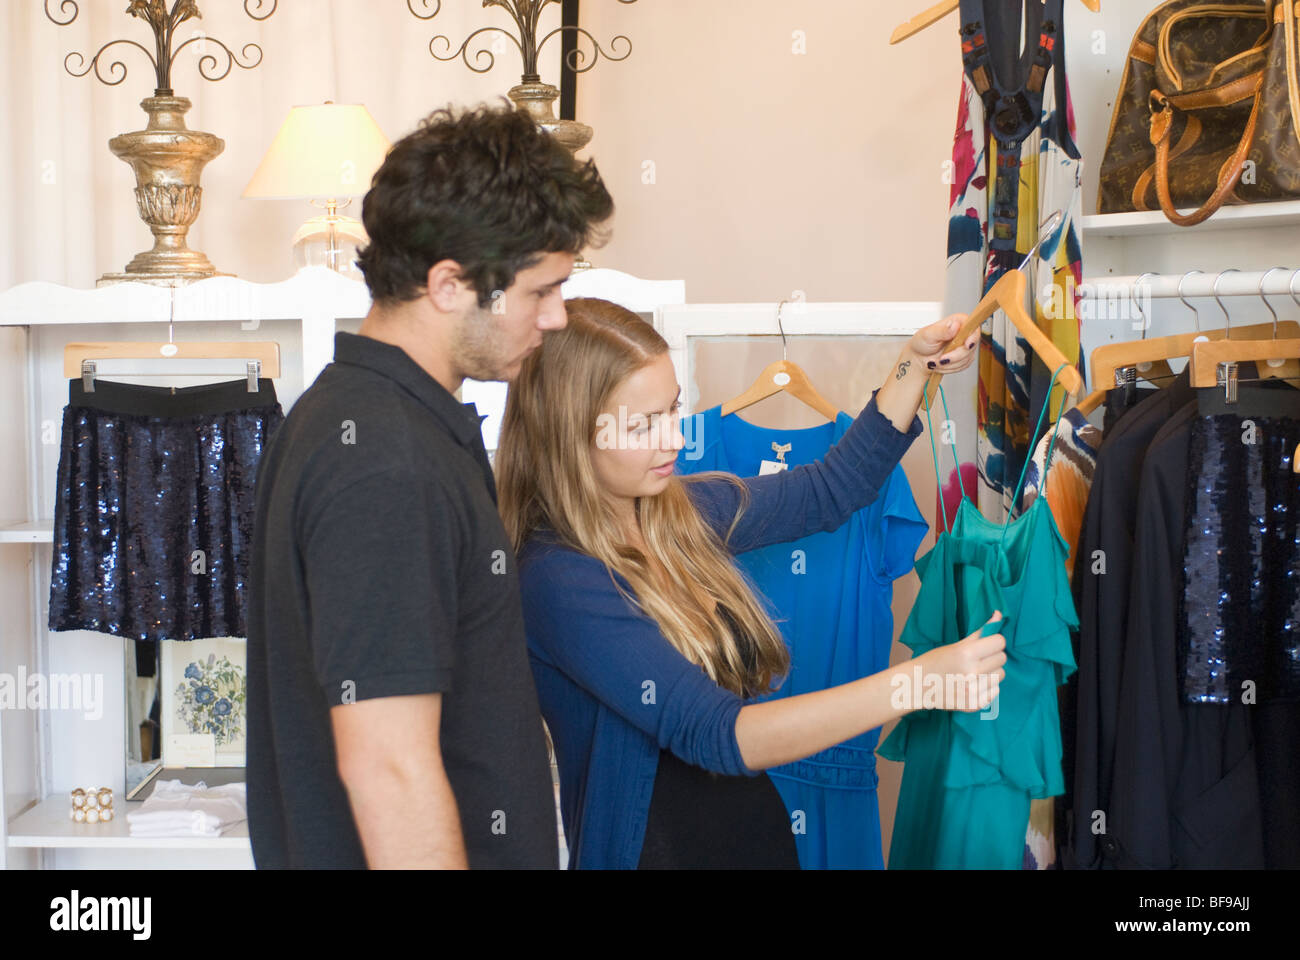 Stock Photo   Young Couple Shopping In Store On Montana Avenue Santa Monica  Los Angeles Southern California